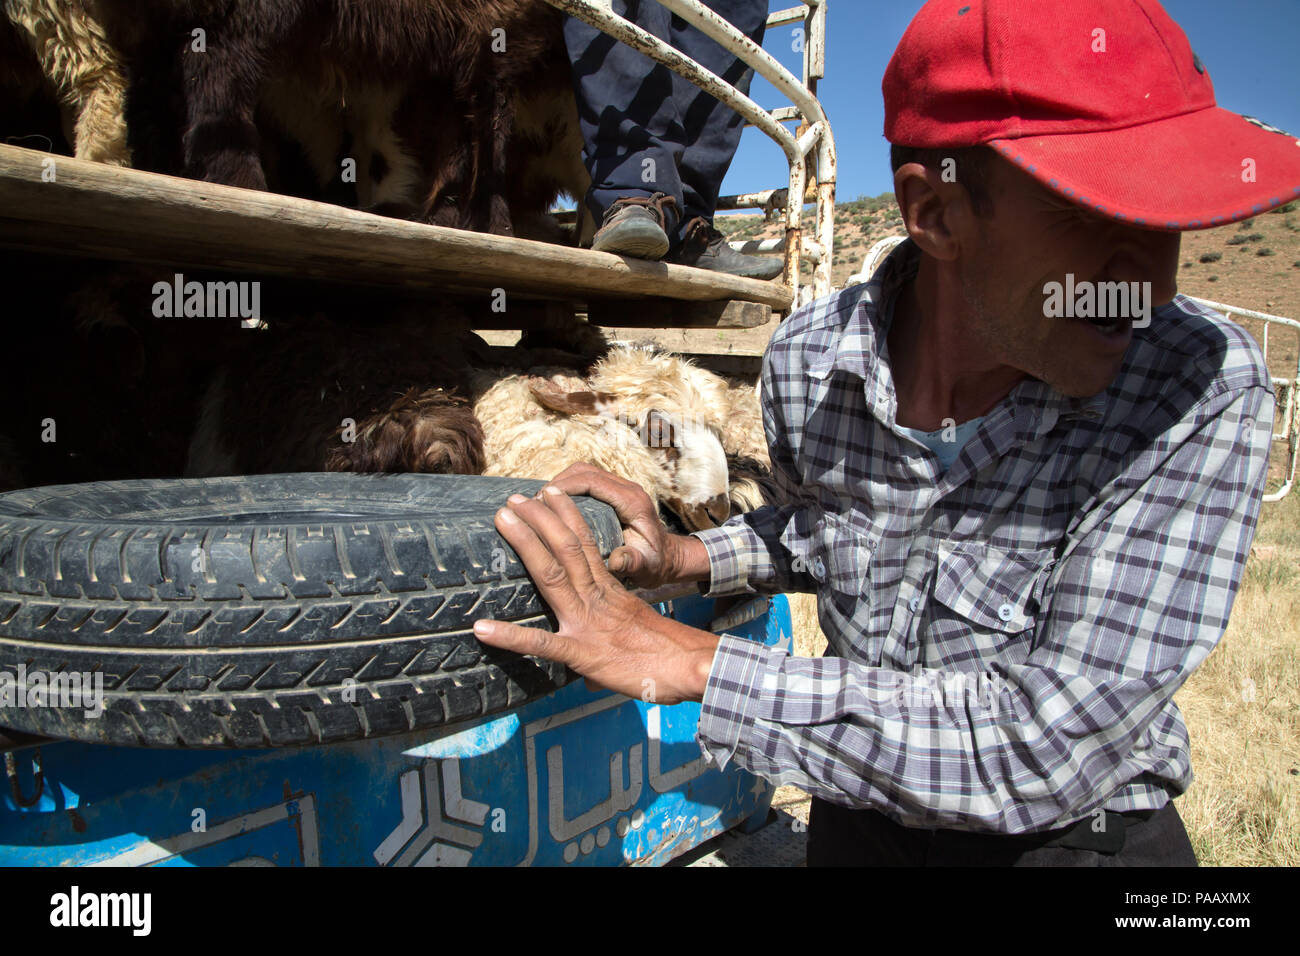 Qashqai man putting sheeps in van for selling them to Shiraz market,  nomad people, Iran - Stock Image